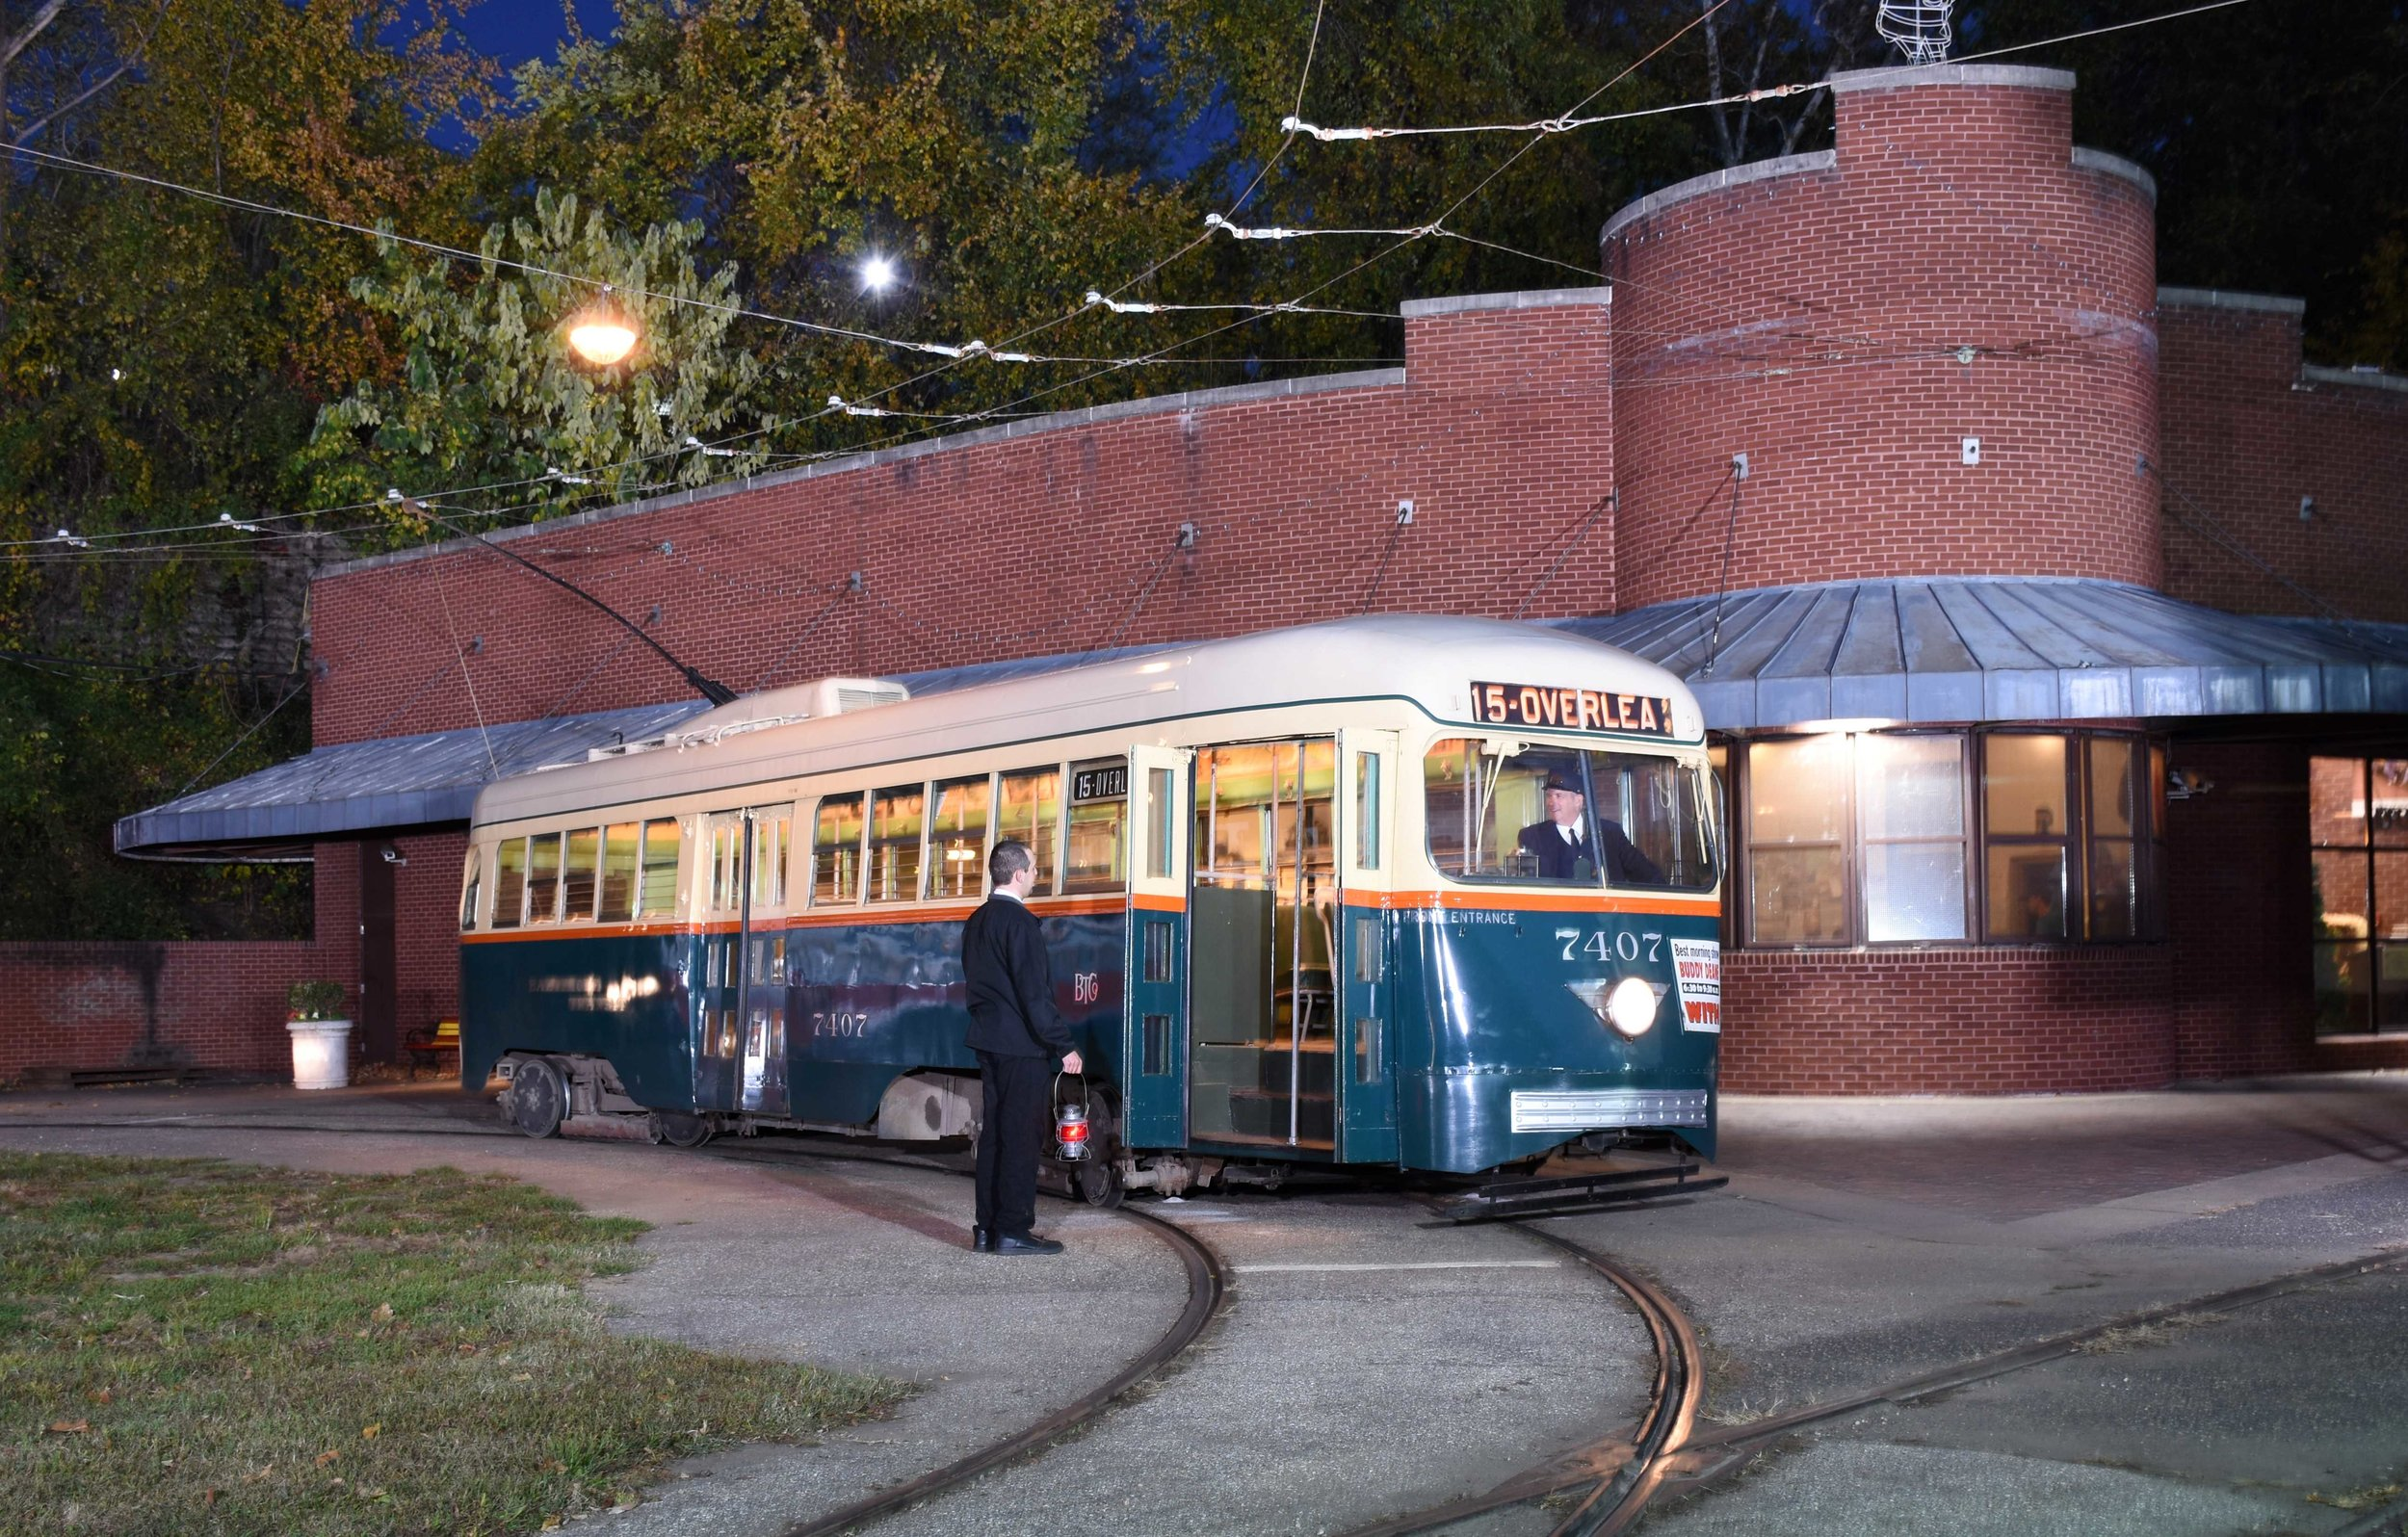 Car 7407, Year 1944 Image Credit: Bill Monaghan  Before the advent of light rail in the 1970s, PCC cars were the highest form of streetcar development achieved in North America. They evolved from a design by the Presidents' Conference Committee (hence the designation PCC), a group of street railway executives and car builders who first convened in the late 1920s to design a modern, fast, comfortable, and quiet standardized streetcar to win back riders from the ever-more-popular automobile. In 1936, Baltimore became the second city, after Brooklyn, New York, to place an order for the new cars, which eventually totaled 5,000 in use throughout most principal cities in the United States, Canada and Mexico. Baltimore Transit purchased a large fleet of PCCs (275 in all), the first order from the St. Louis Car Company of St. Louis, Missouri and the balance from the Pullman-Standard Car Manufacturing Company. One of the latter, No. 7407 was among the last group of streetcars purchased in 1944. It can comfortably seat 54 passengers, has rapid acceleration, high speed (at least 42 miles per hour), and a smooth ride. No. 7407 was the last streetcar to operate on the streets of Baltimore on November 3, 1963. It is worth noting that even though the last PCC cars were built for the North American market in 1952, a number still operate in revenue service in several United States cities.